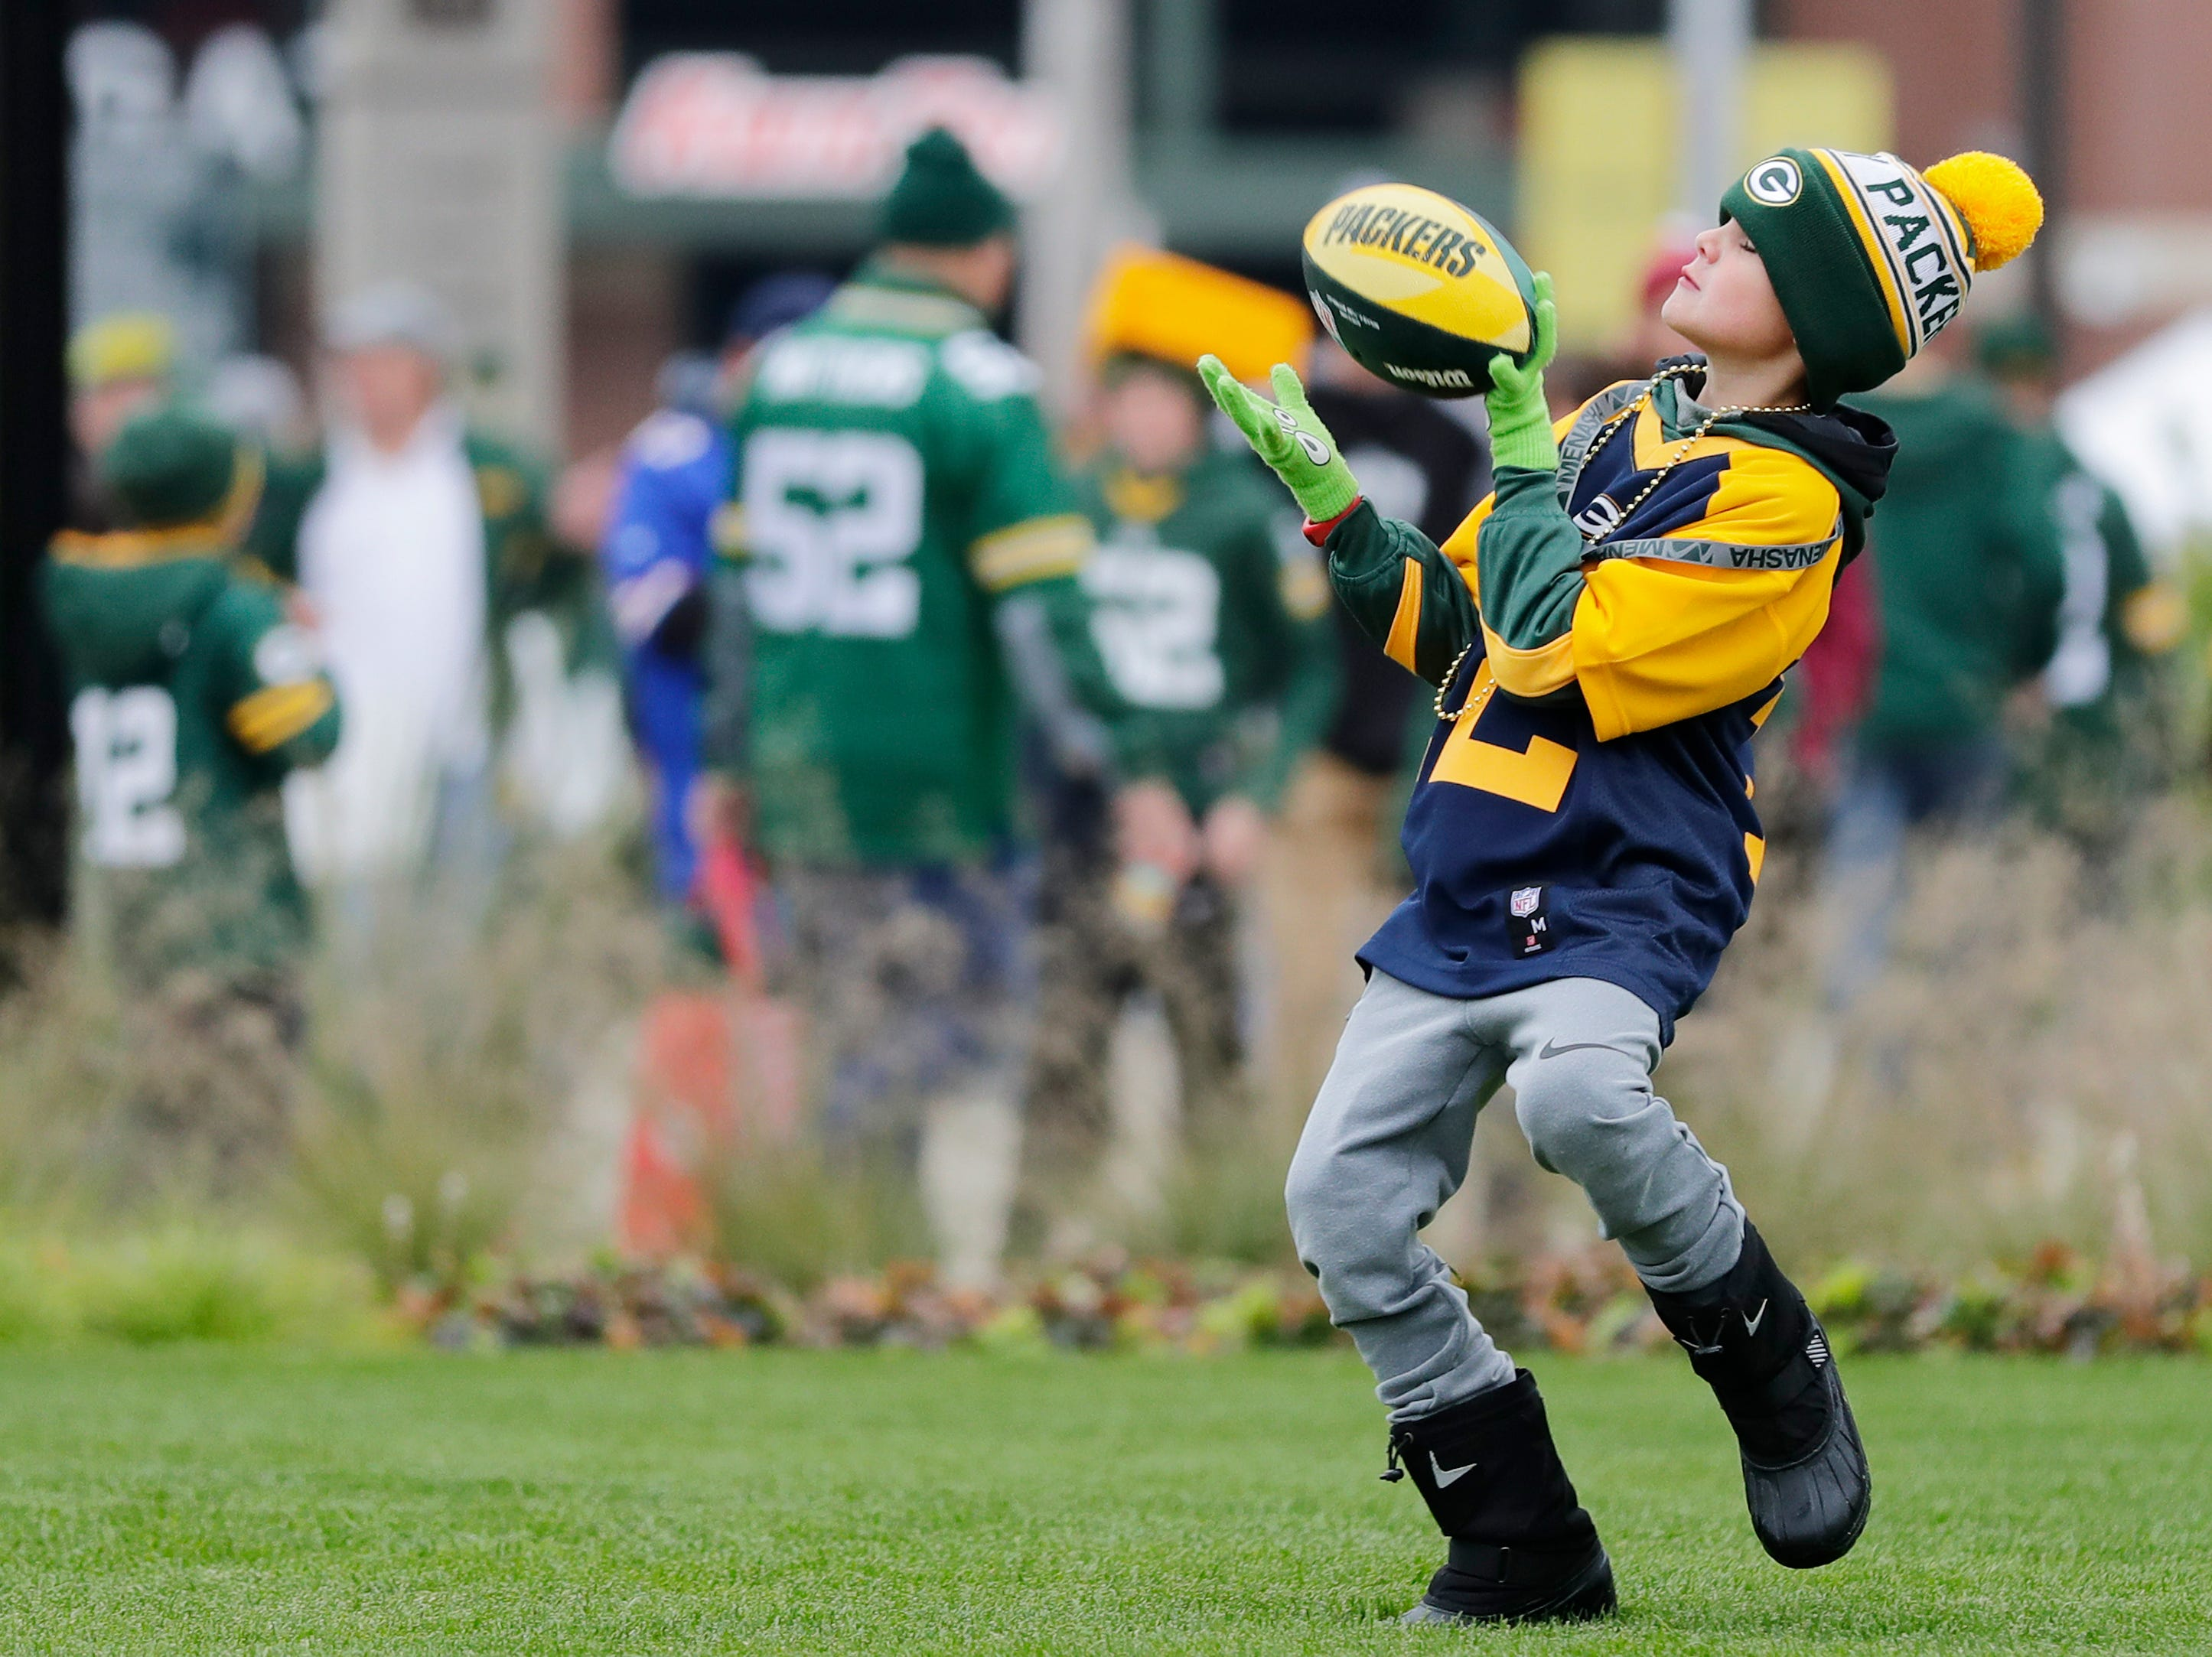 Jace Meyers, 7, of Milwaukee plays catch outside Lambeau Field on Sunday, September 30, 2018 in Green Bay, Wis.